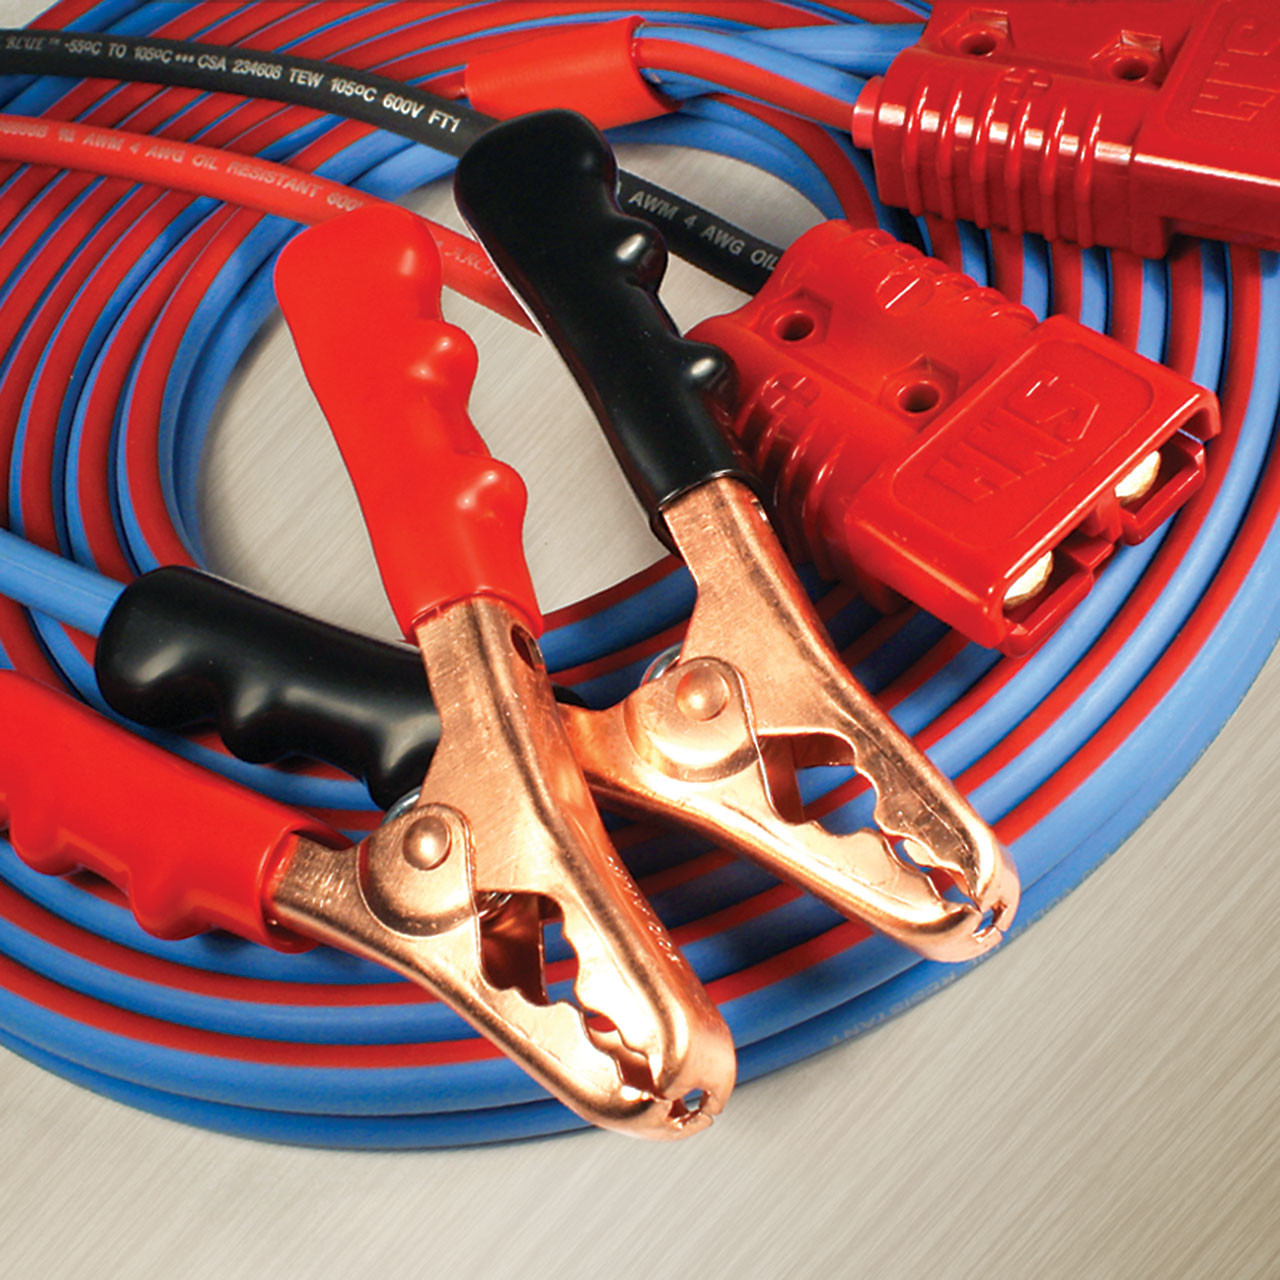 The best Jumper Cables available anywhere!